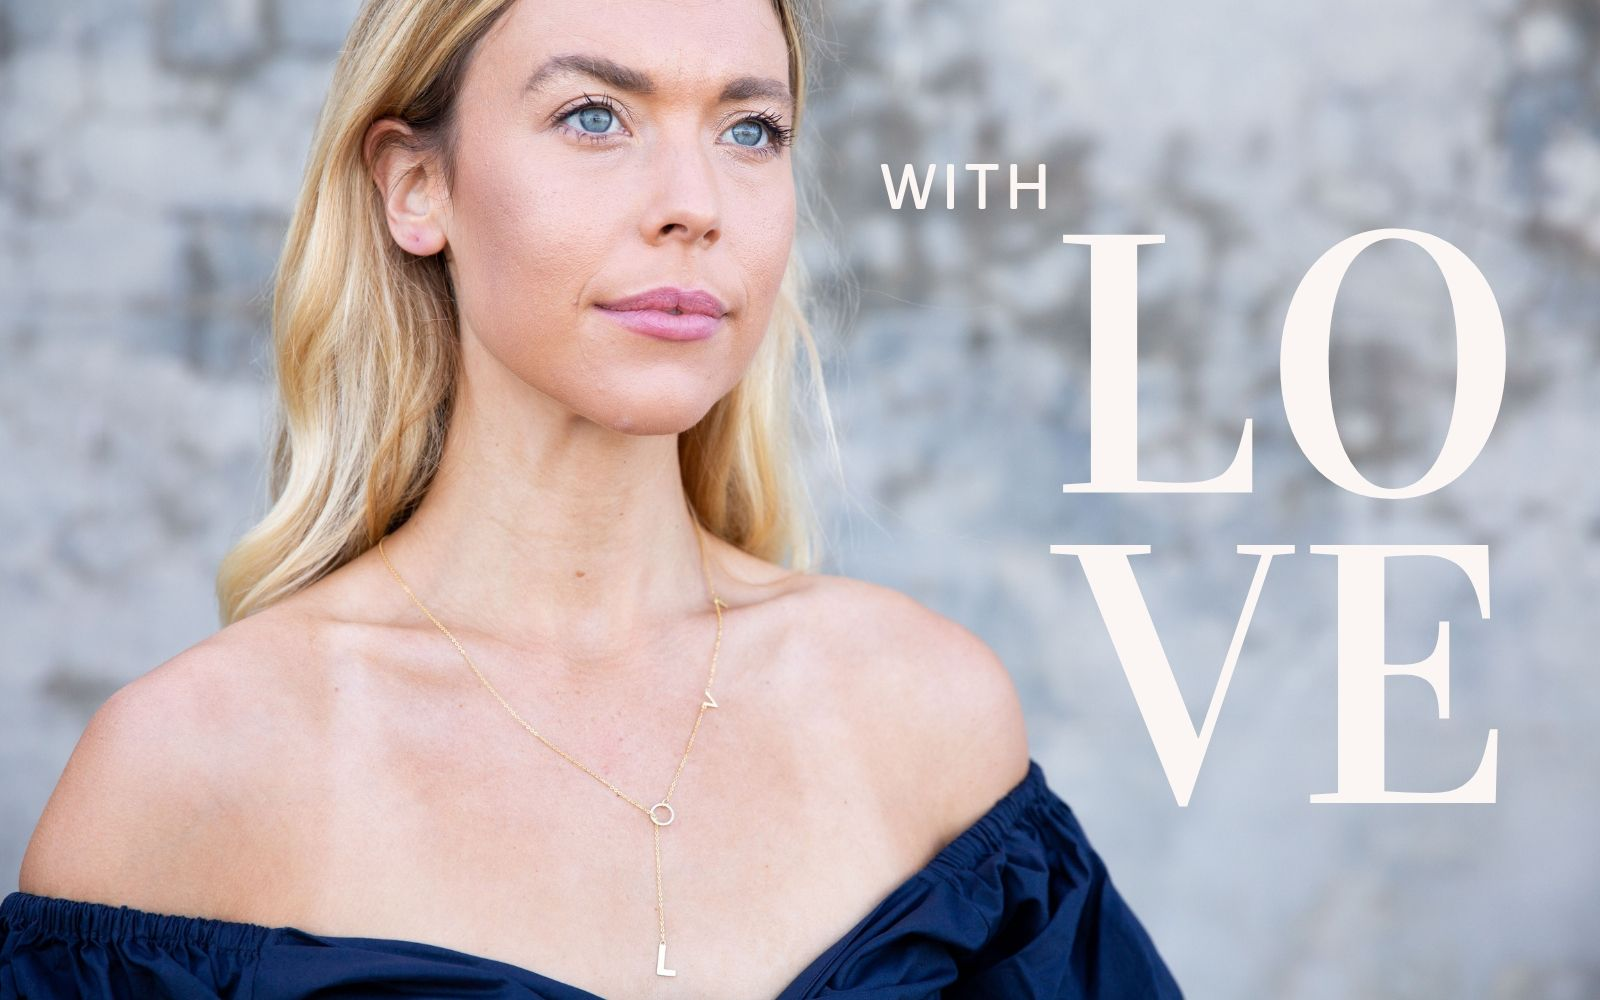 SS19 With Love Jewelry Collection - Chuchka